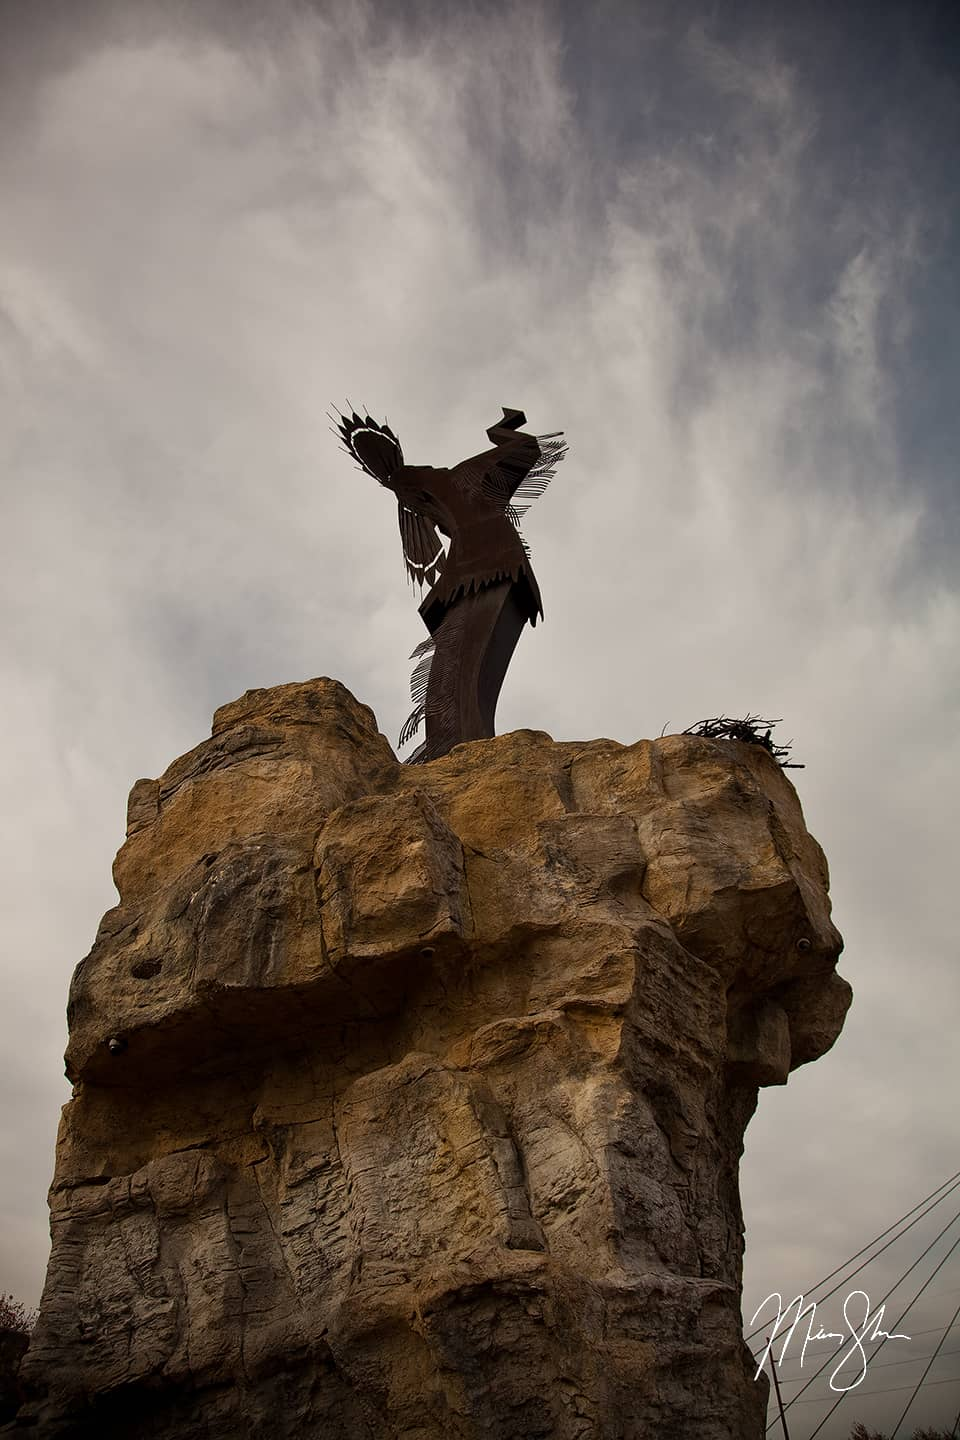 Open edition fine art print of Reaching Upward Keeper of the Plains from Mickey Shannon Photography. Location: Wichita, Kansas